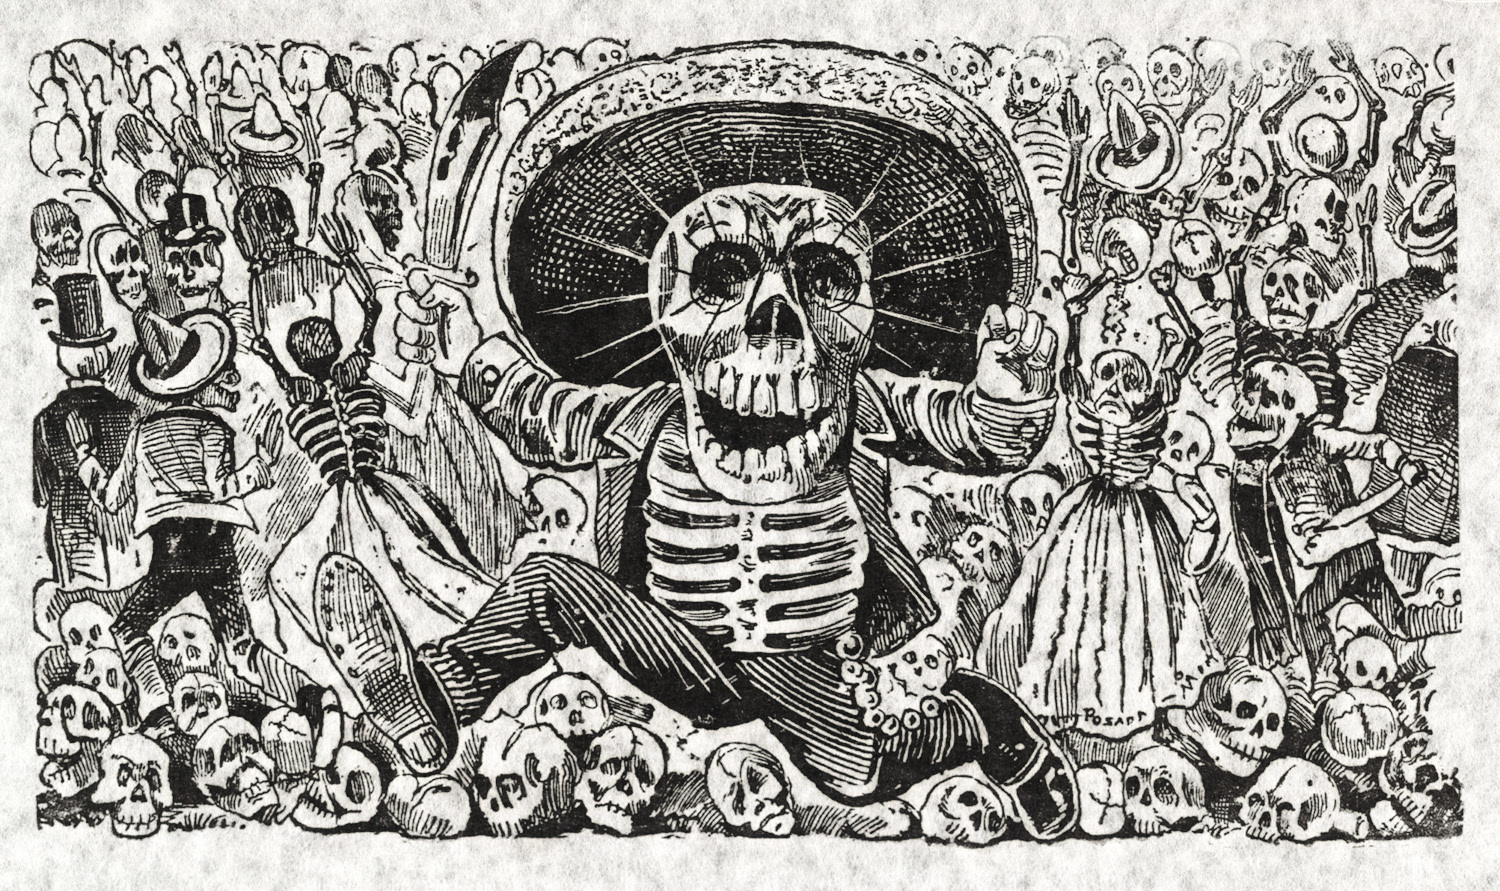 Jos guadalupe posada skulls skeletons and macabre mischief of indigenous symbols and motifs today humorous political cartoons and satirical comic strips are incredibly popular in mexico and for many biocorpaavc Images